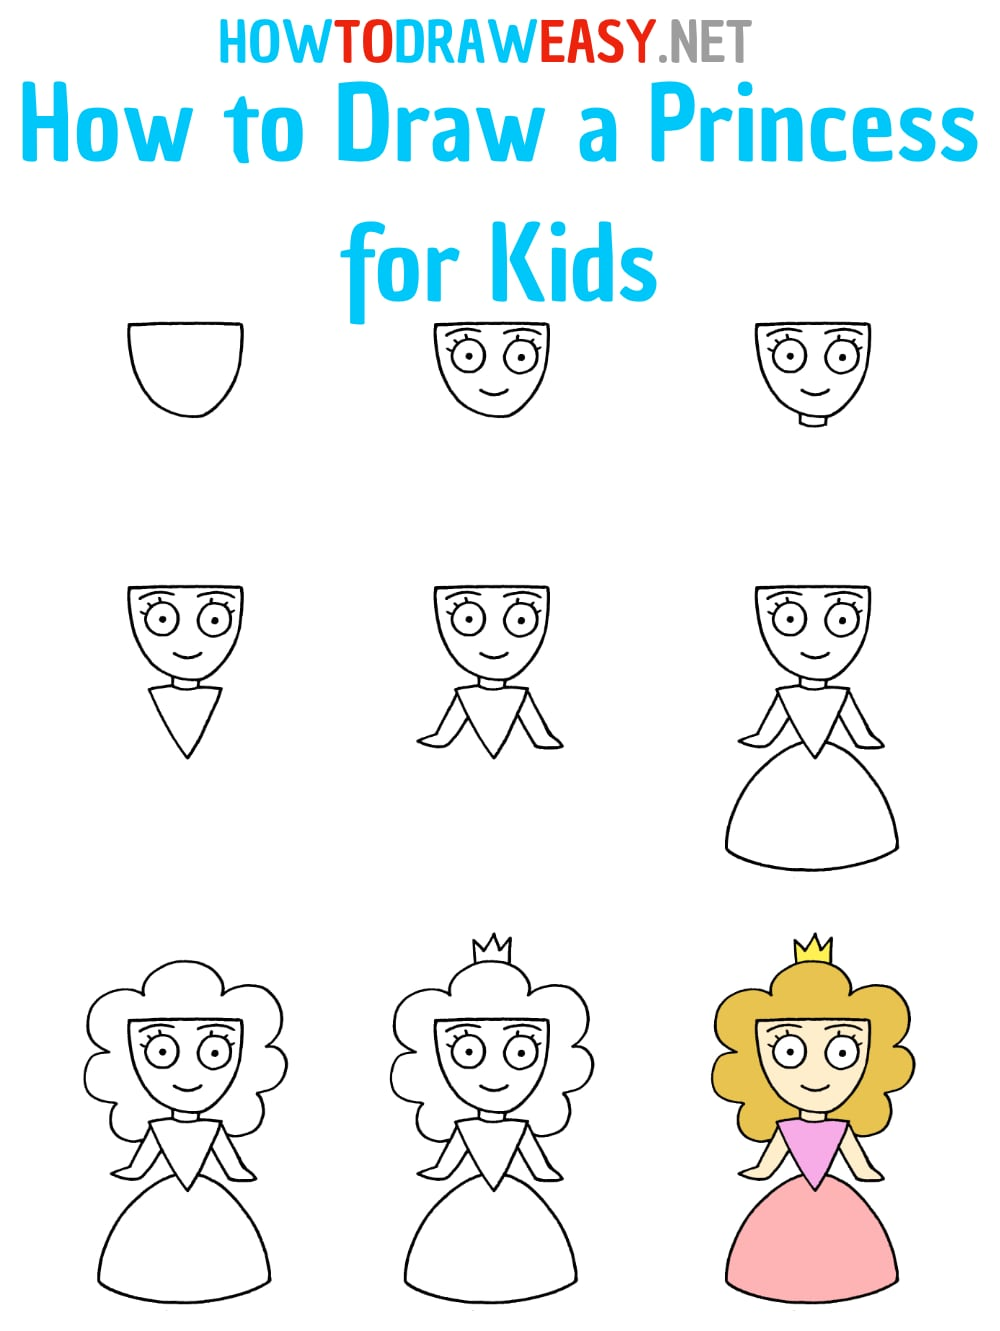 How to Draw a Princess for Kids Step by Step